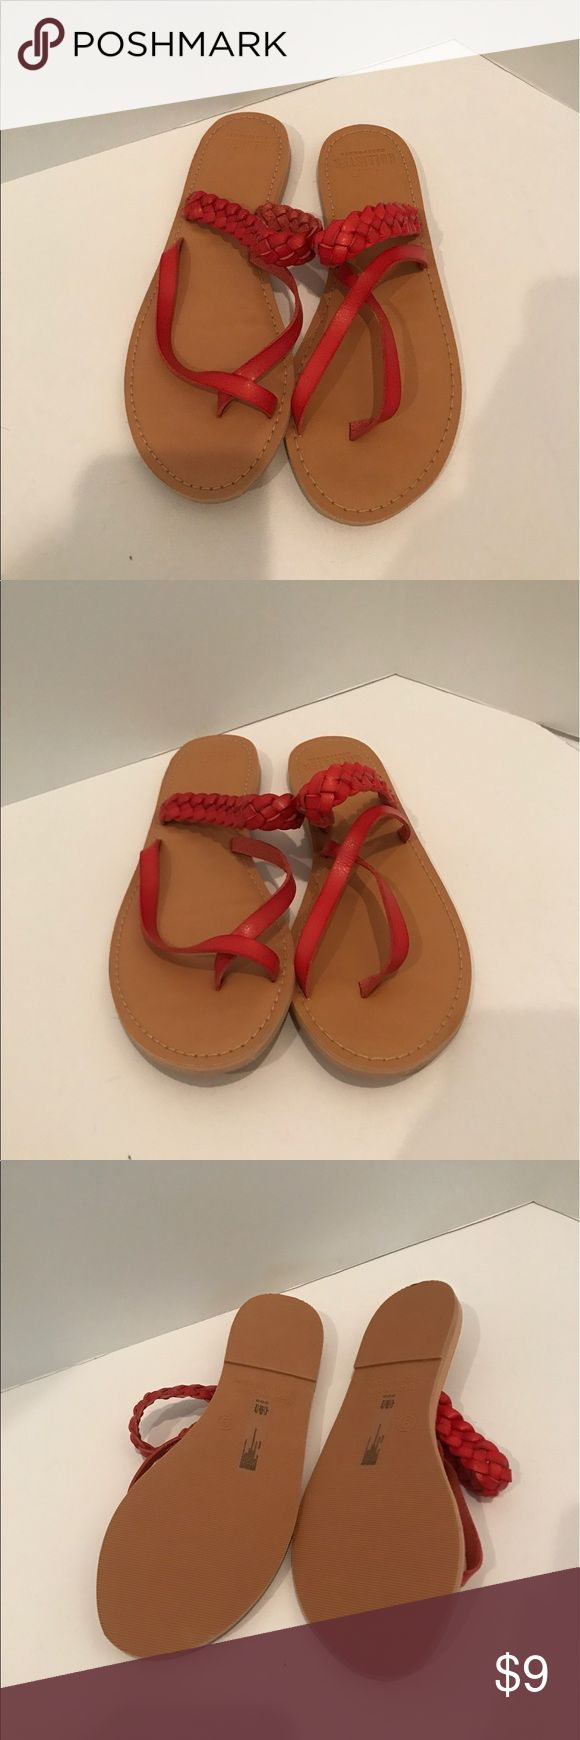 Hollister sandles size 9 New with out tags great condition never worn size 9 Hollister Shoes Sandals